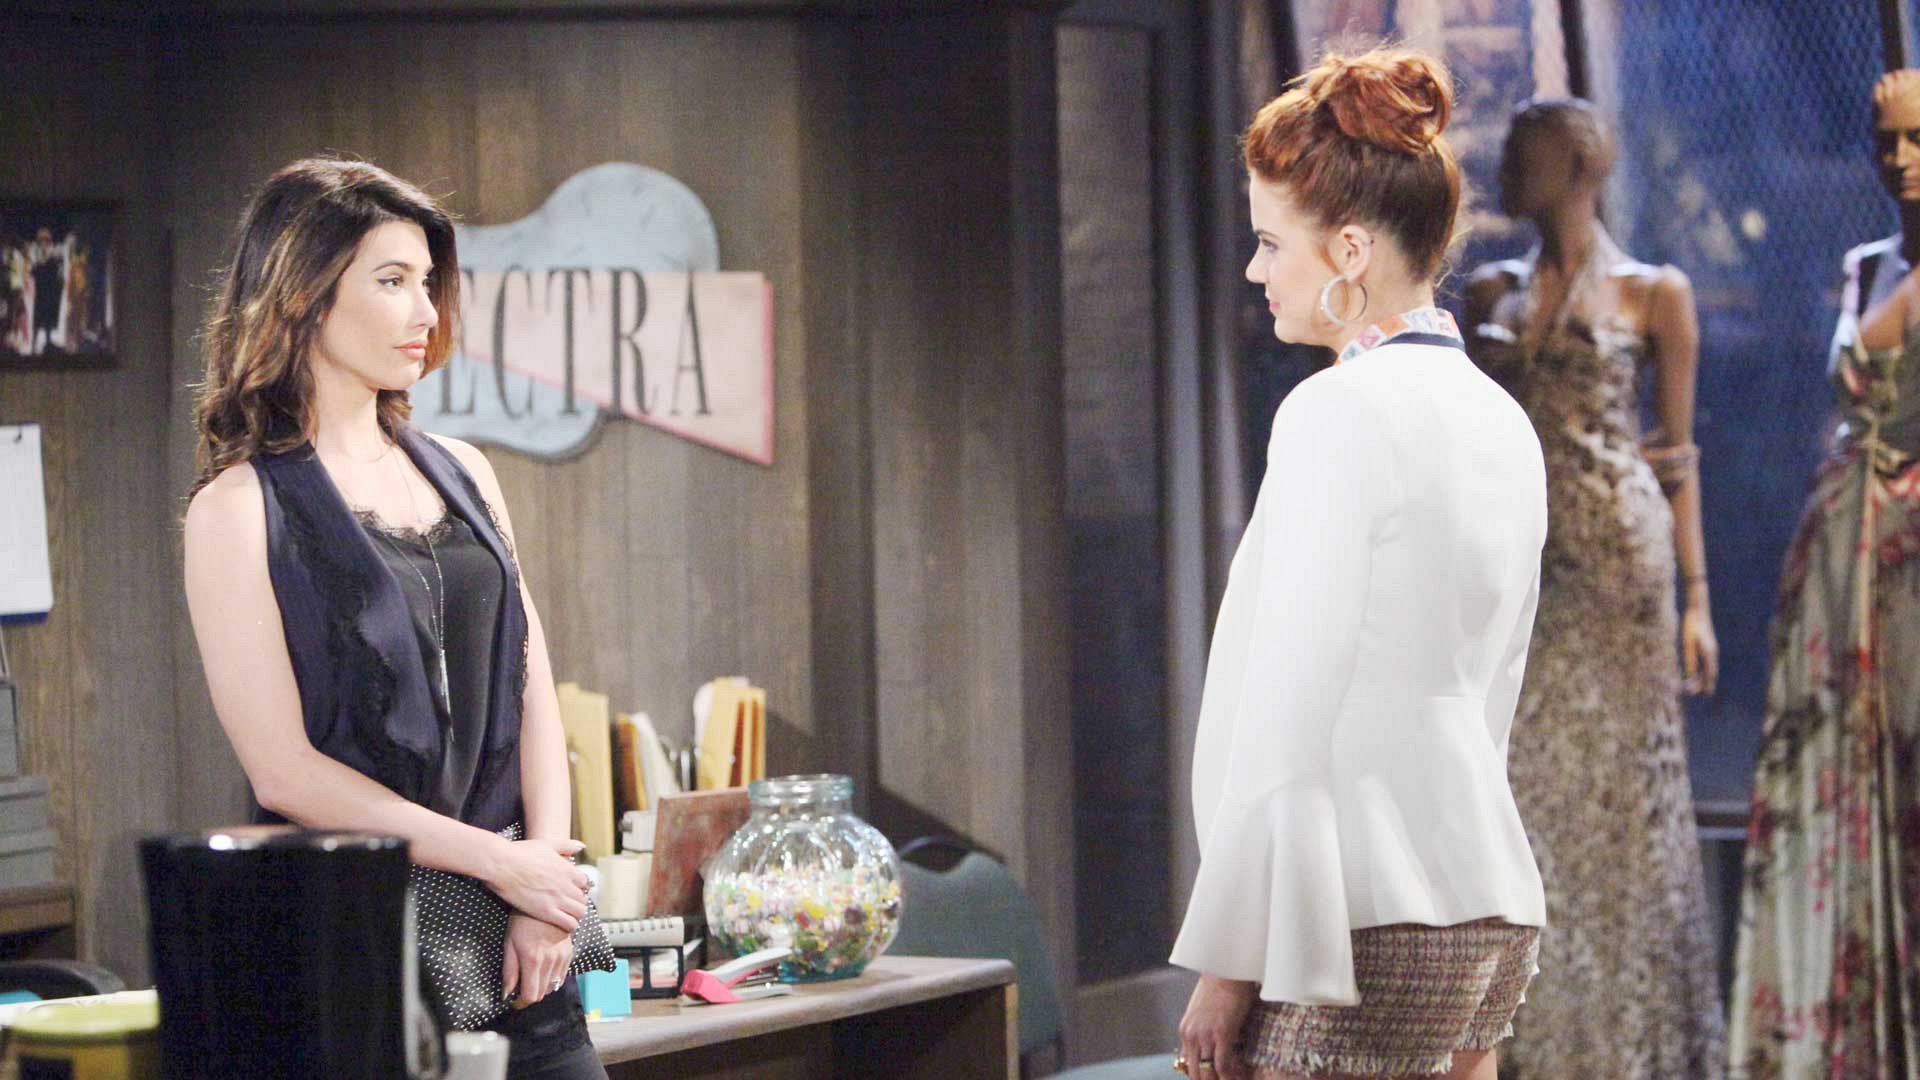 Steffy goes to confront Sally and assure her that Spectra Fashions will never be true competition for Forrester Creations.